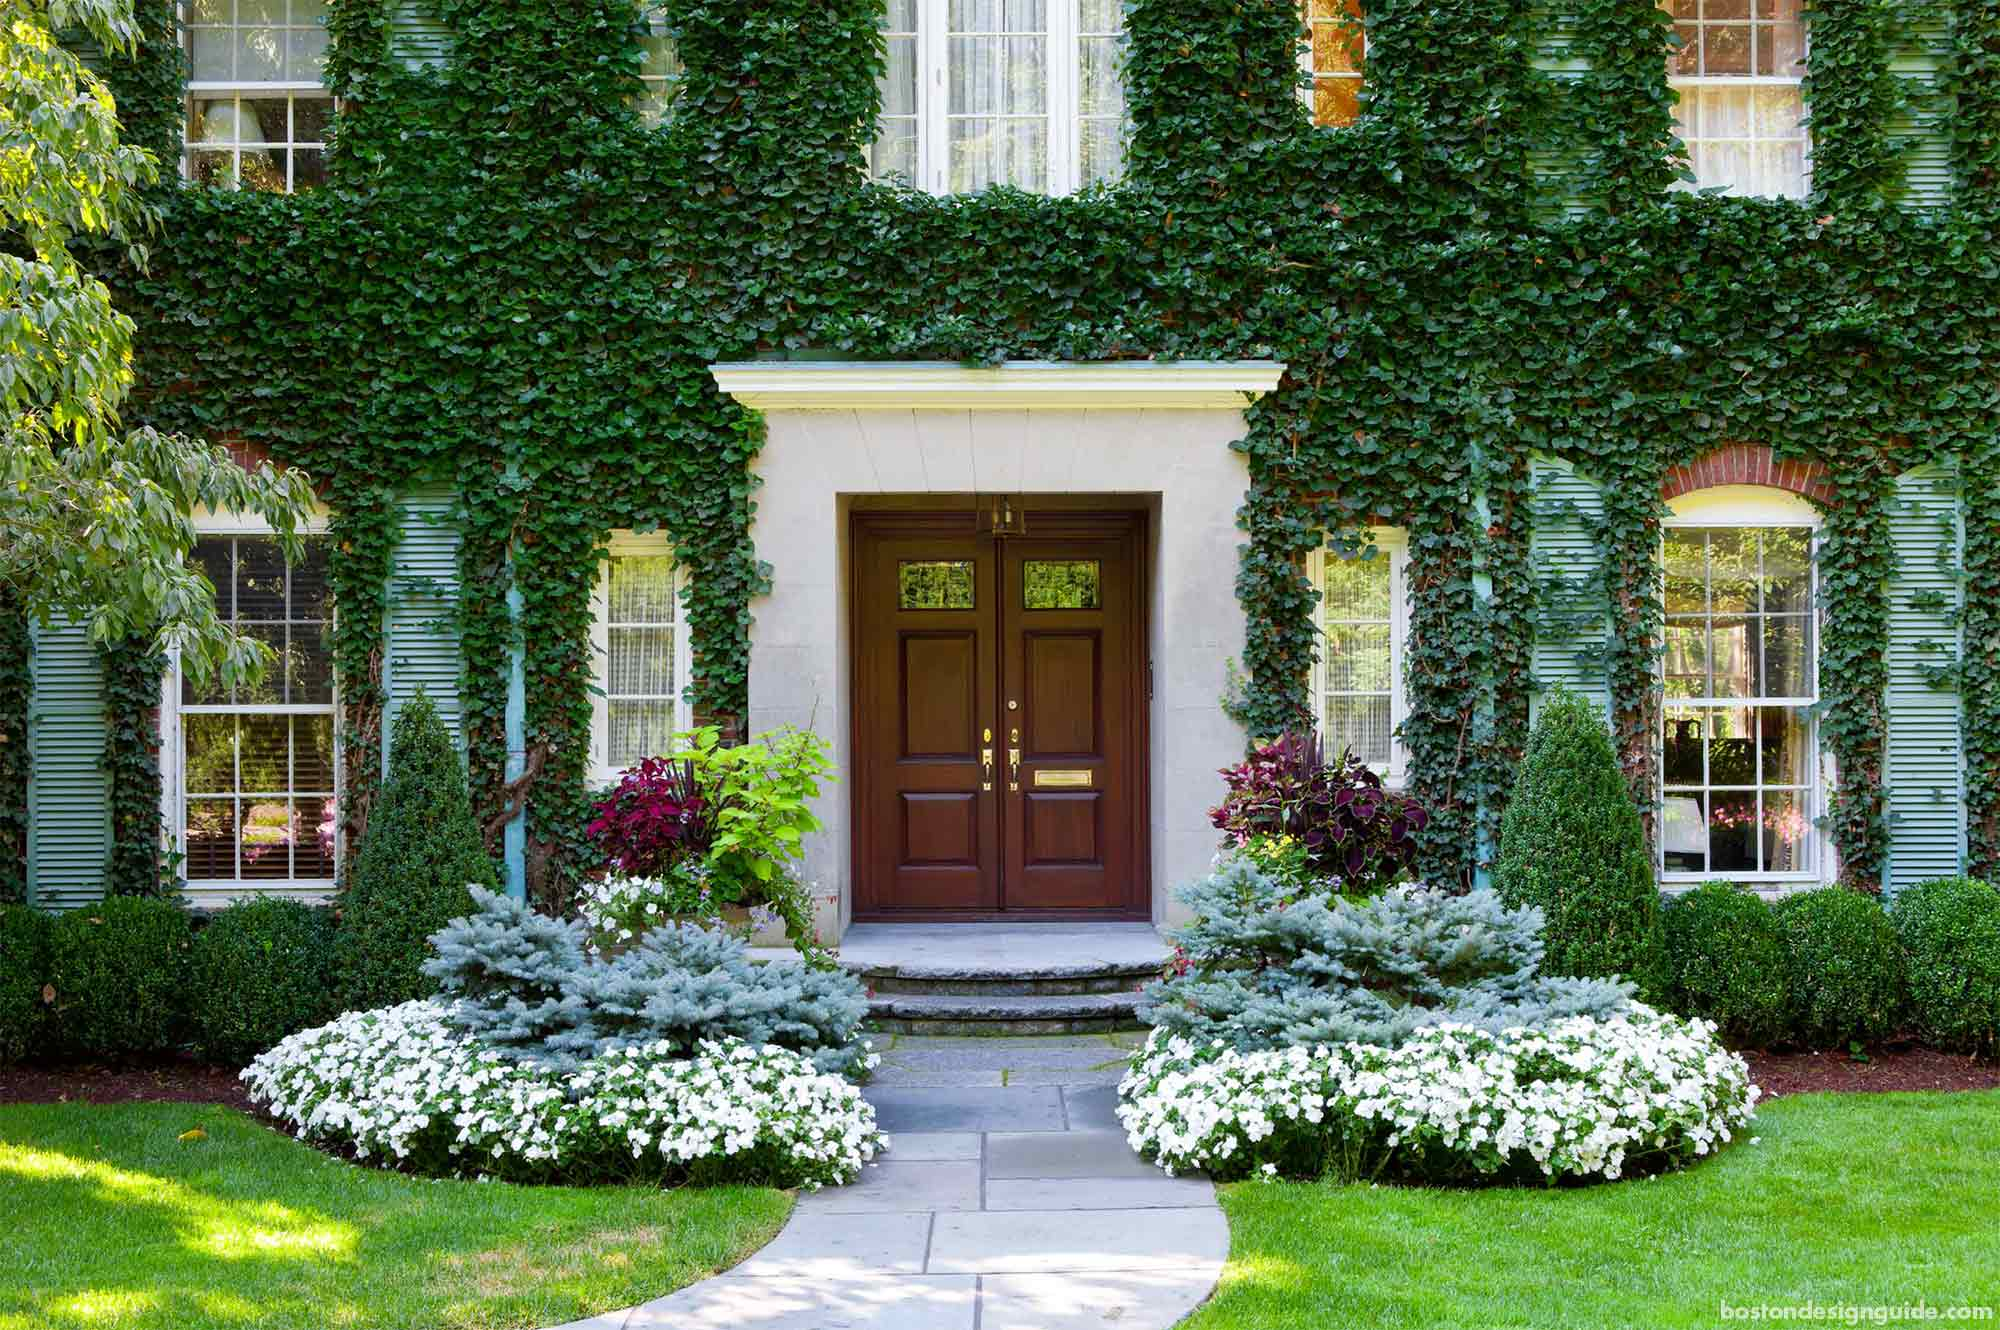 landscape architecture professionals in New England